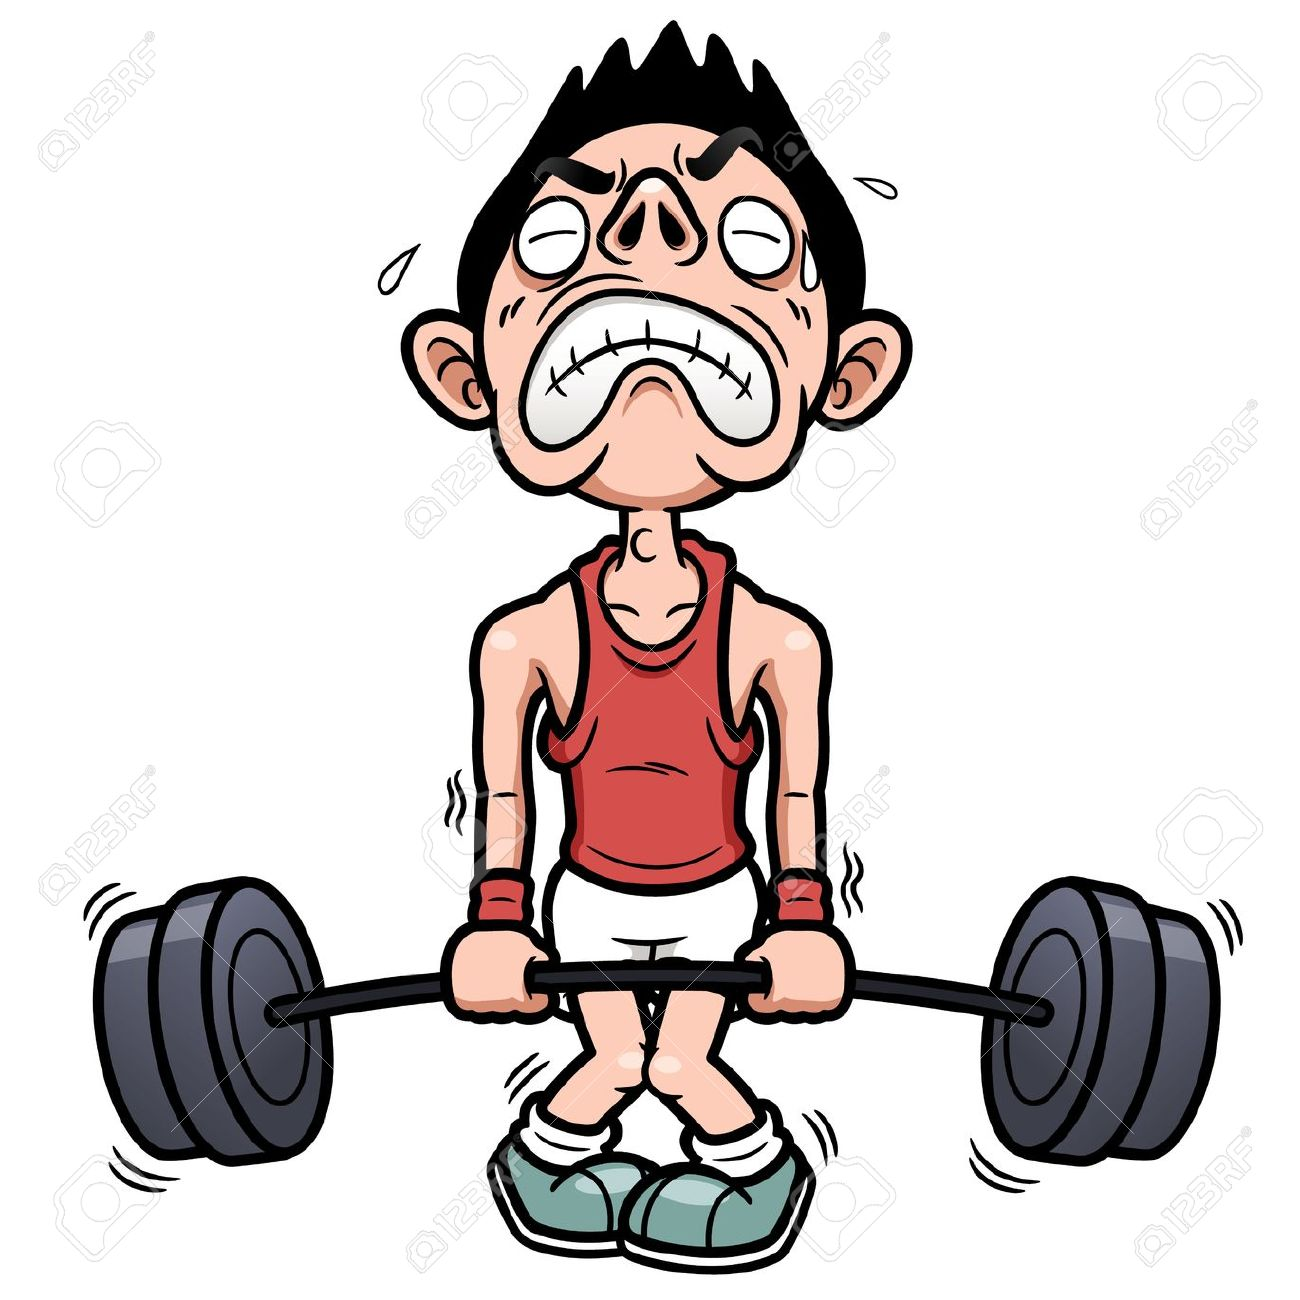 Strong confident man cartoon clipart free.